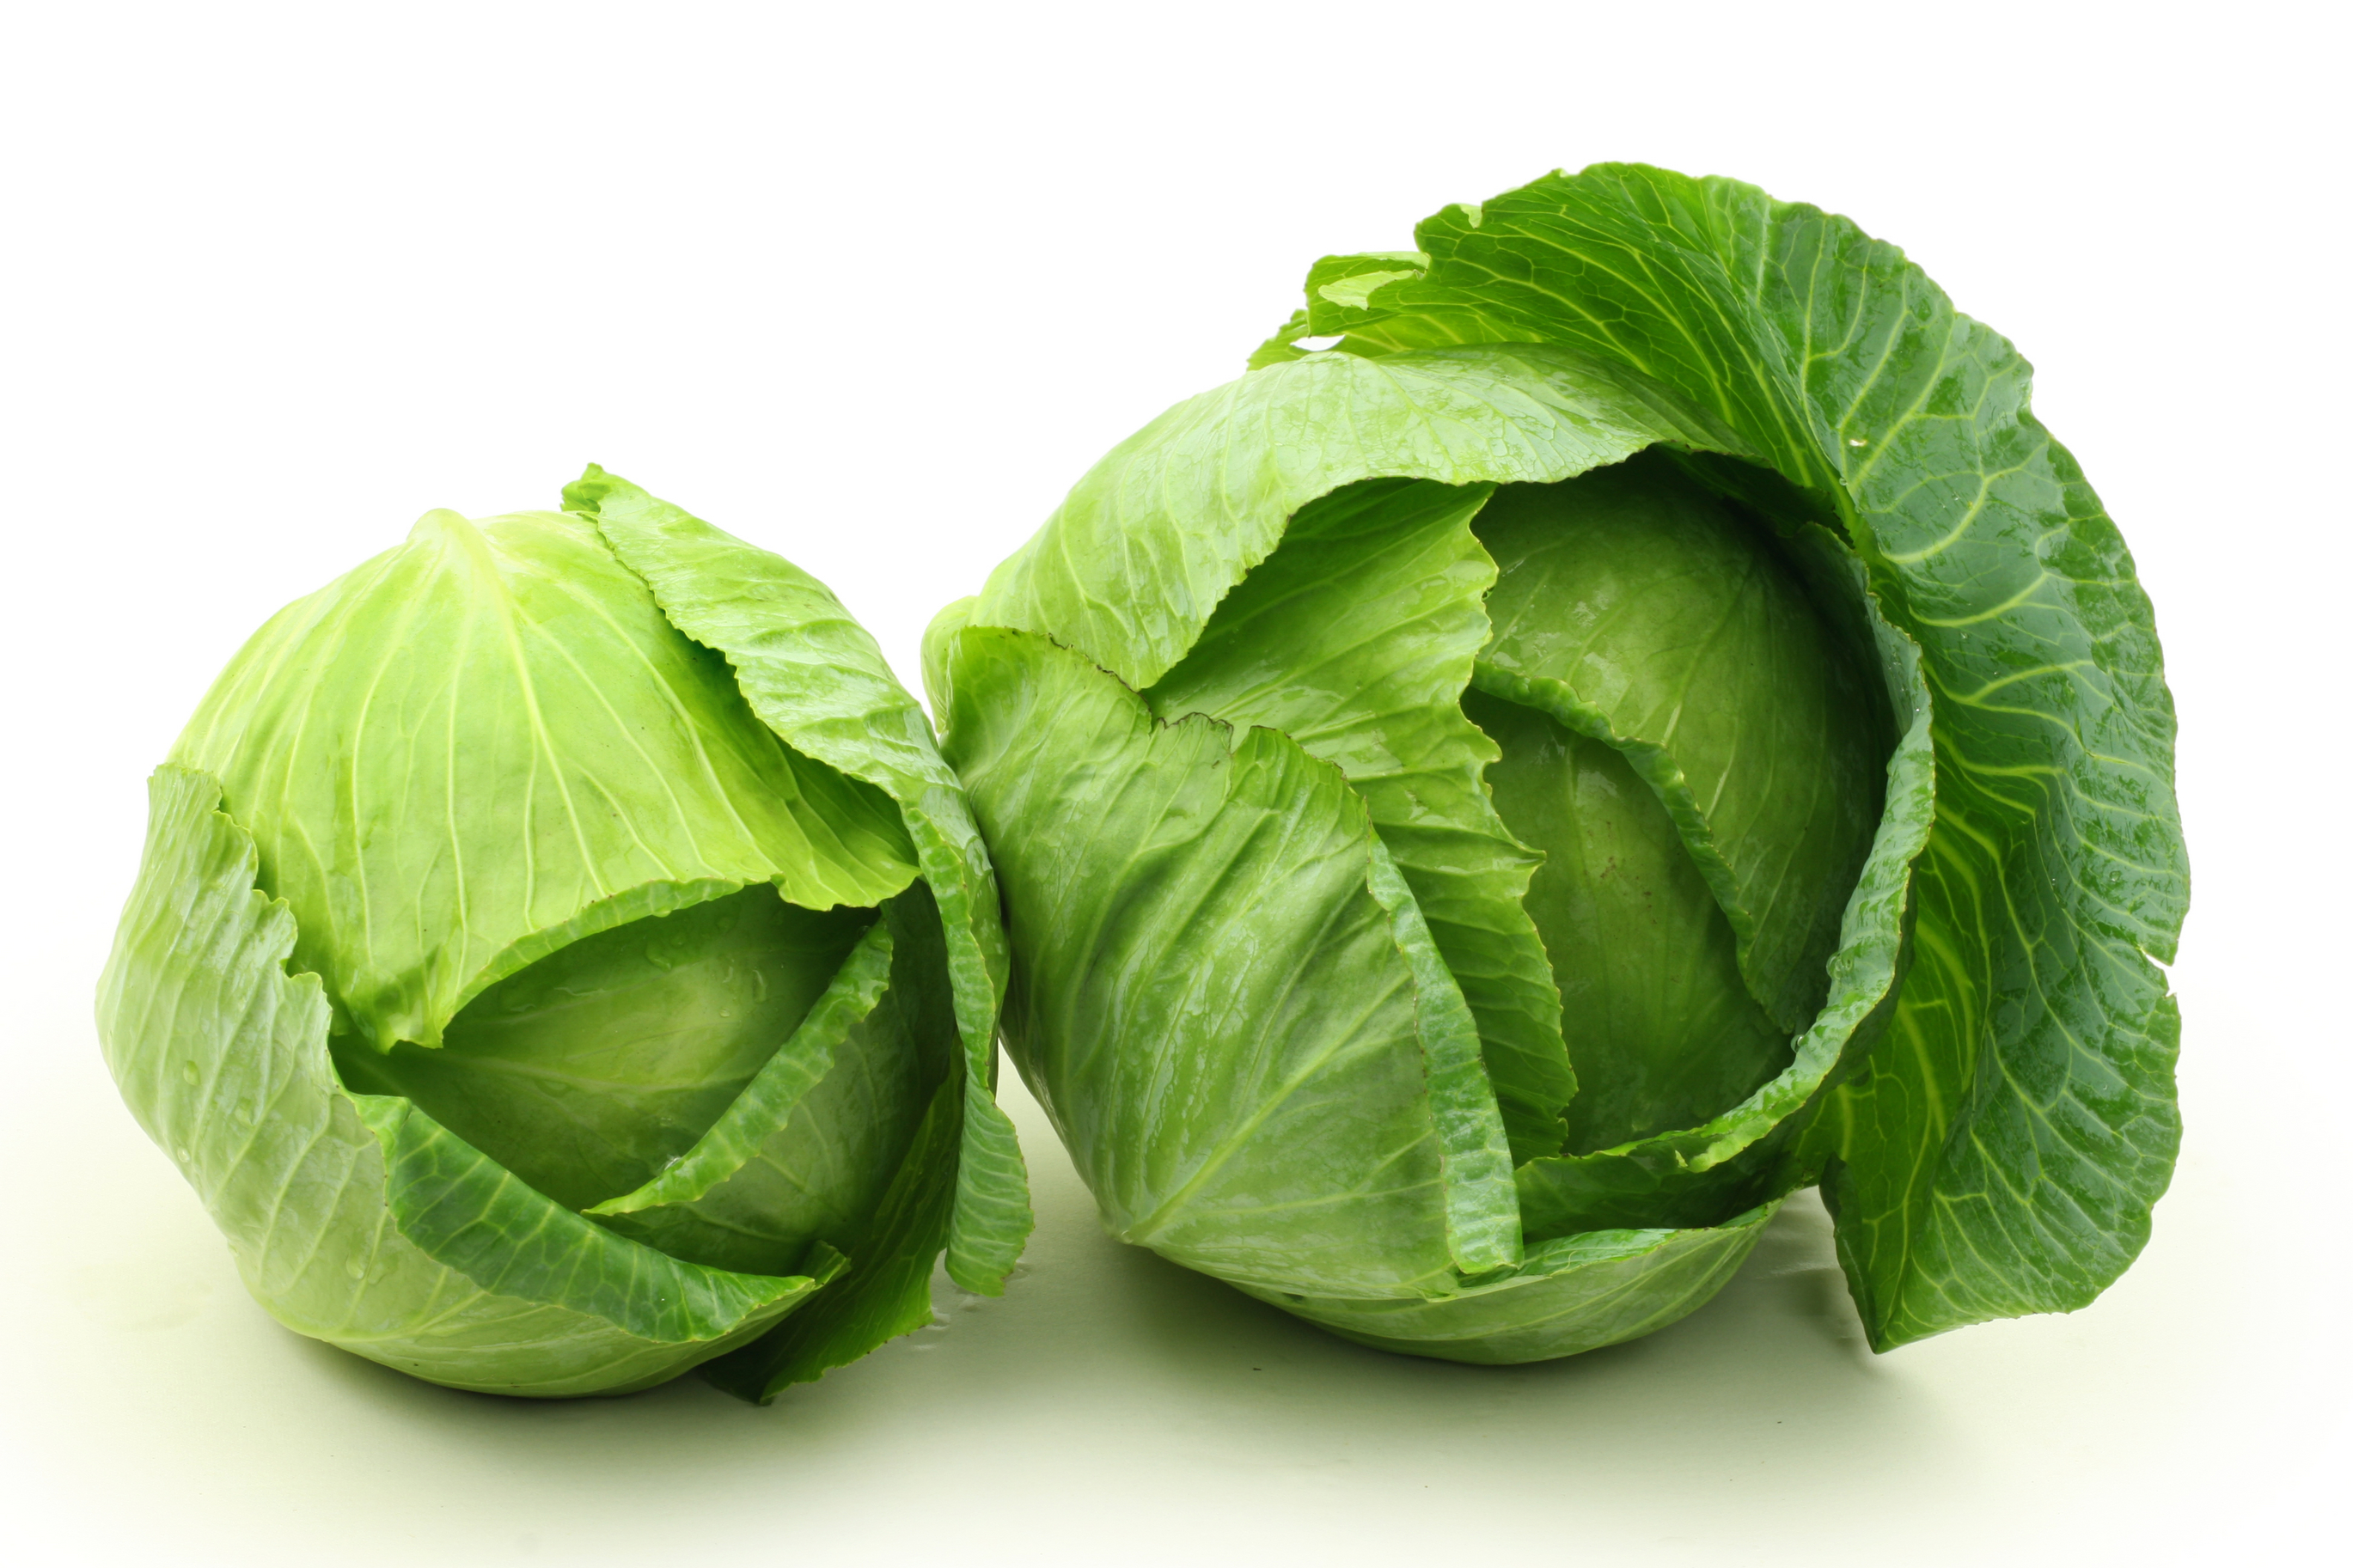 Green Cabbage Leaves 3745.92 Kb